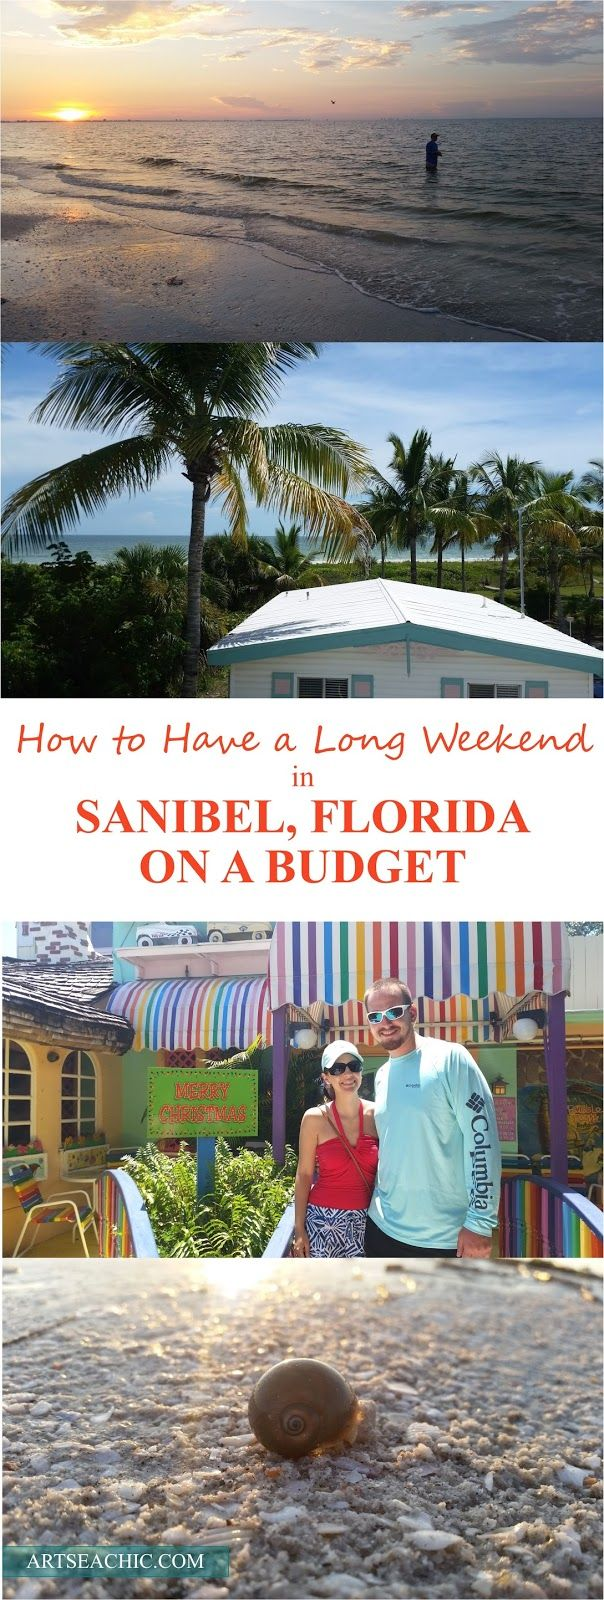 How to Have a Long Weekend in Sanibel, Florida on a Budget // 4 days and 3 nights staying on our favorite Florida island for less than $2,000!